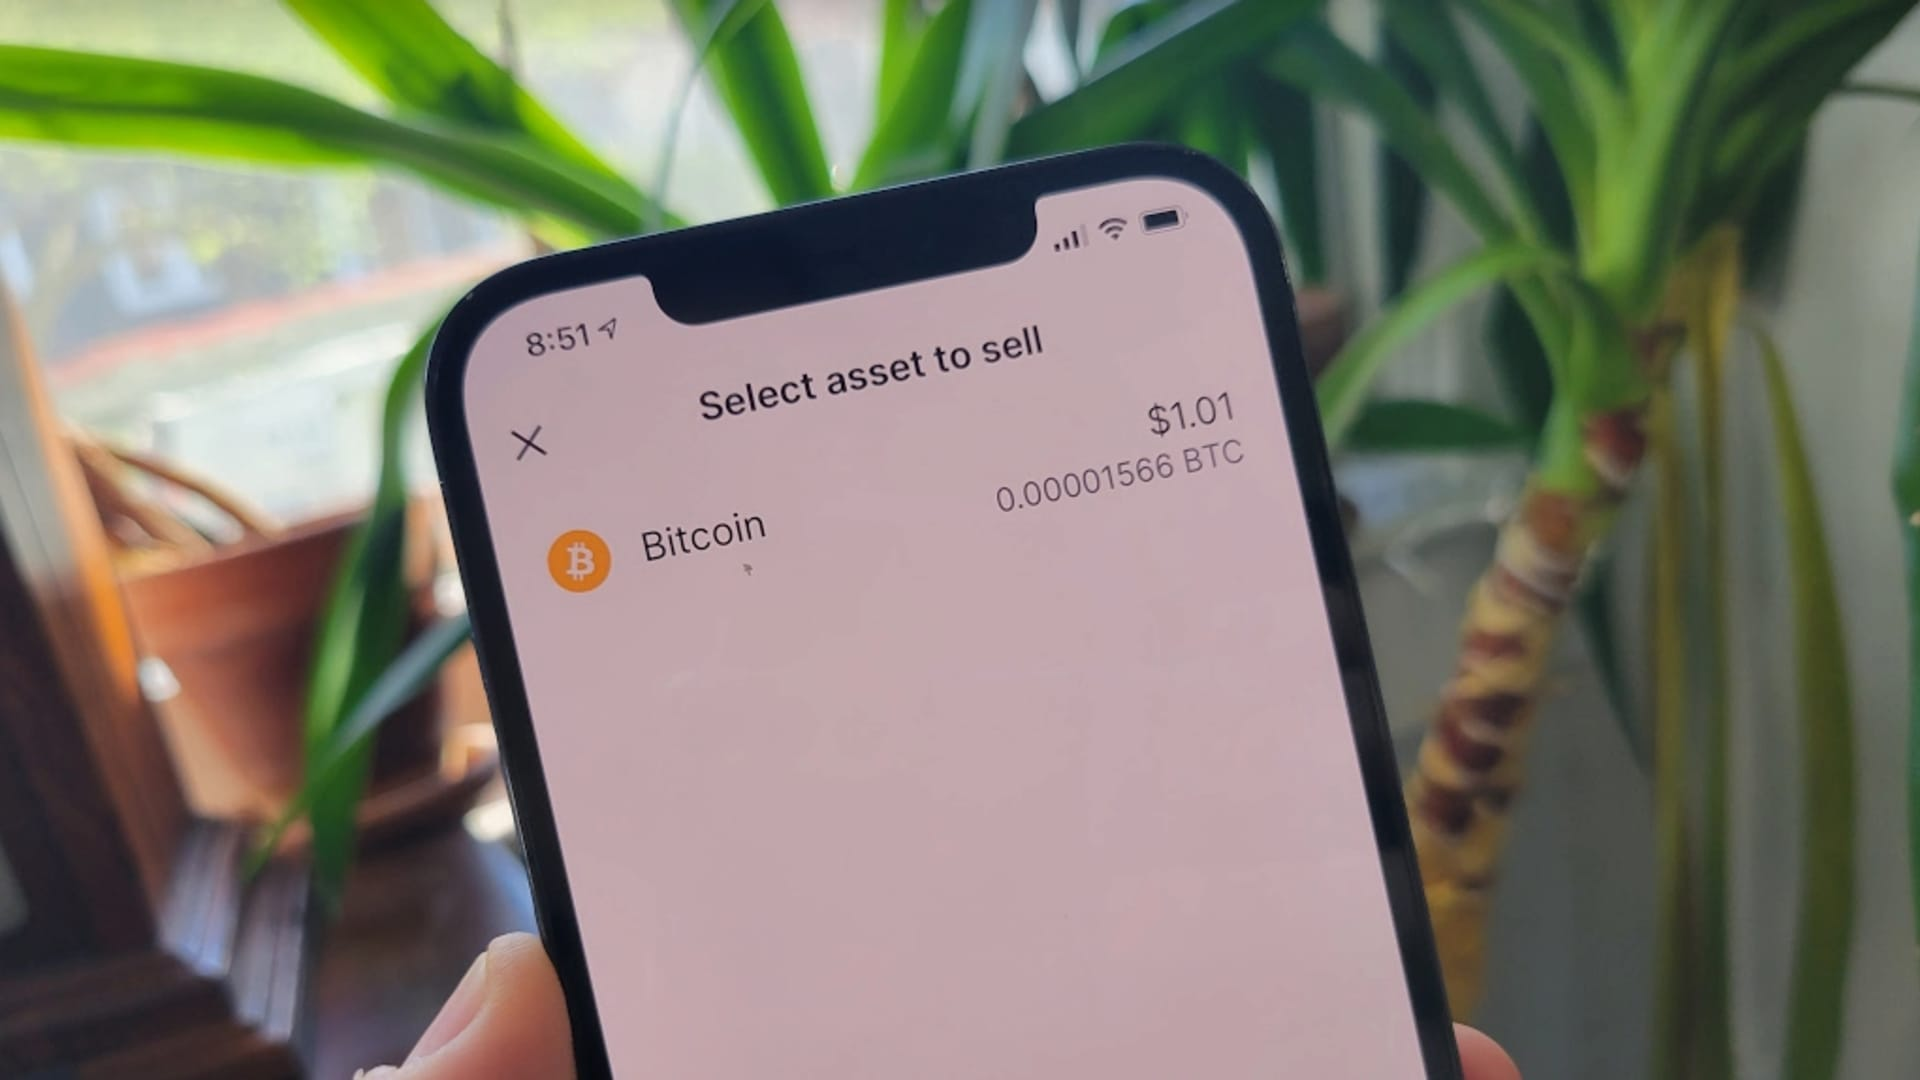 How to sell bitcoin with Coinbase